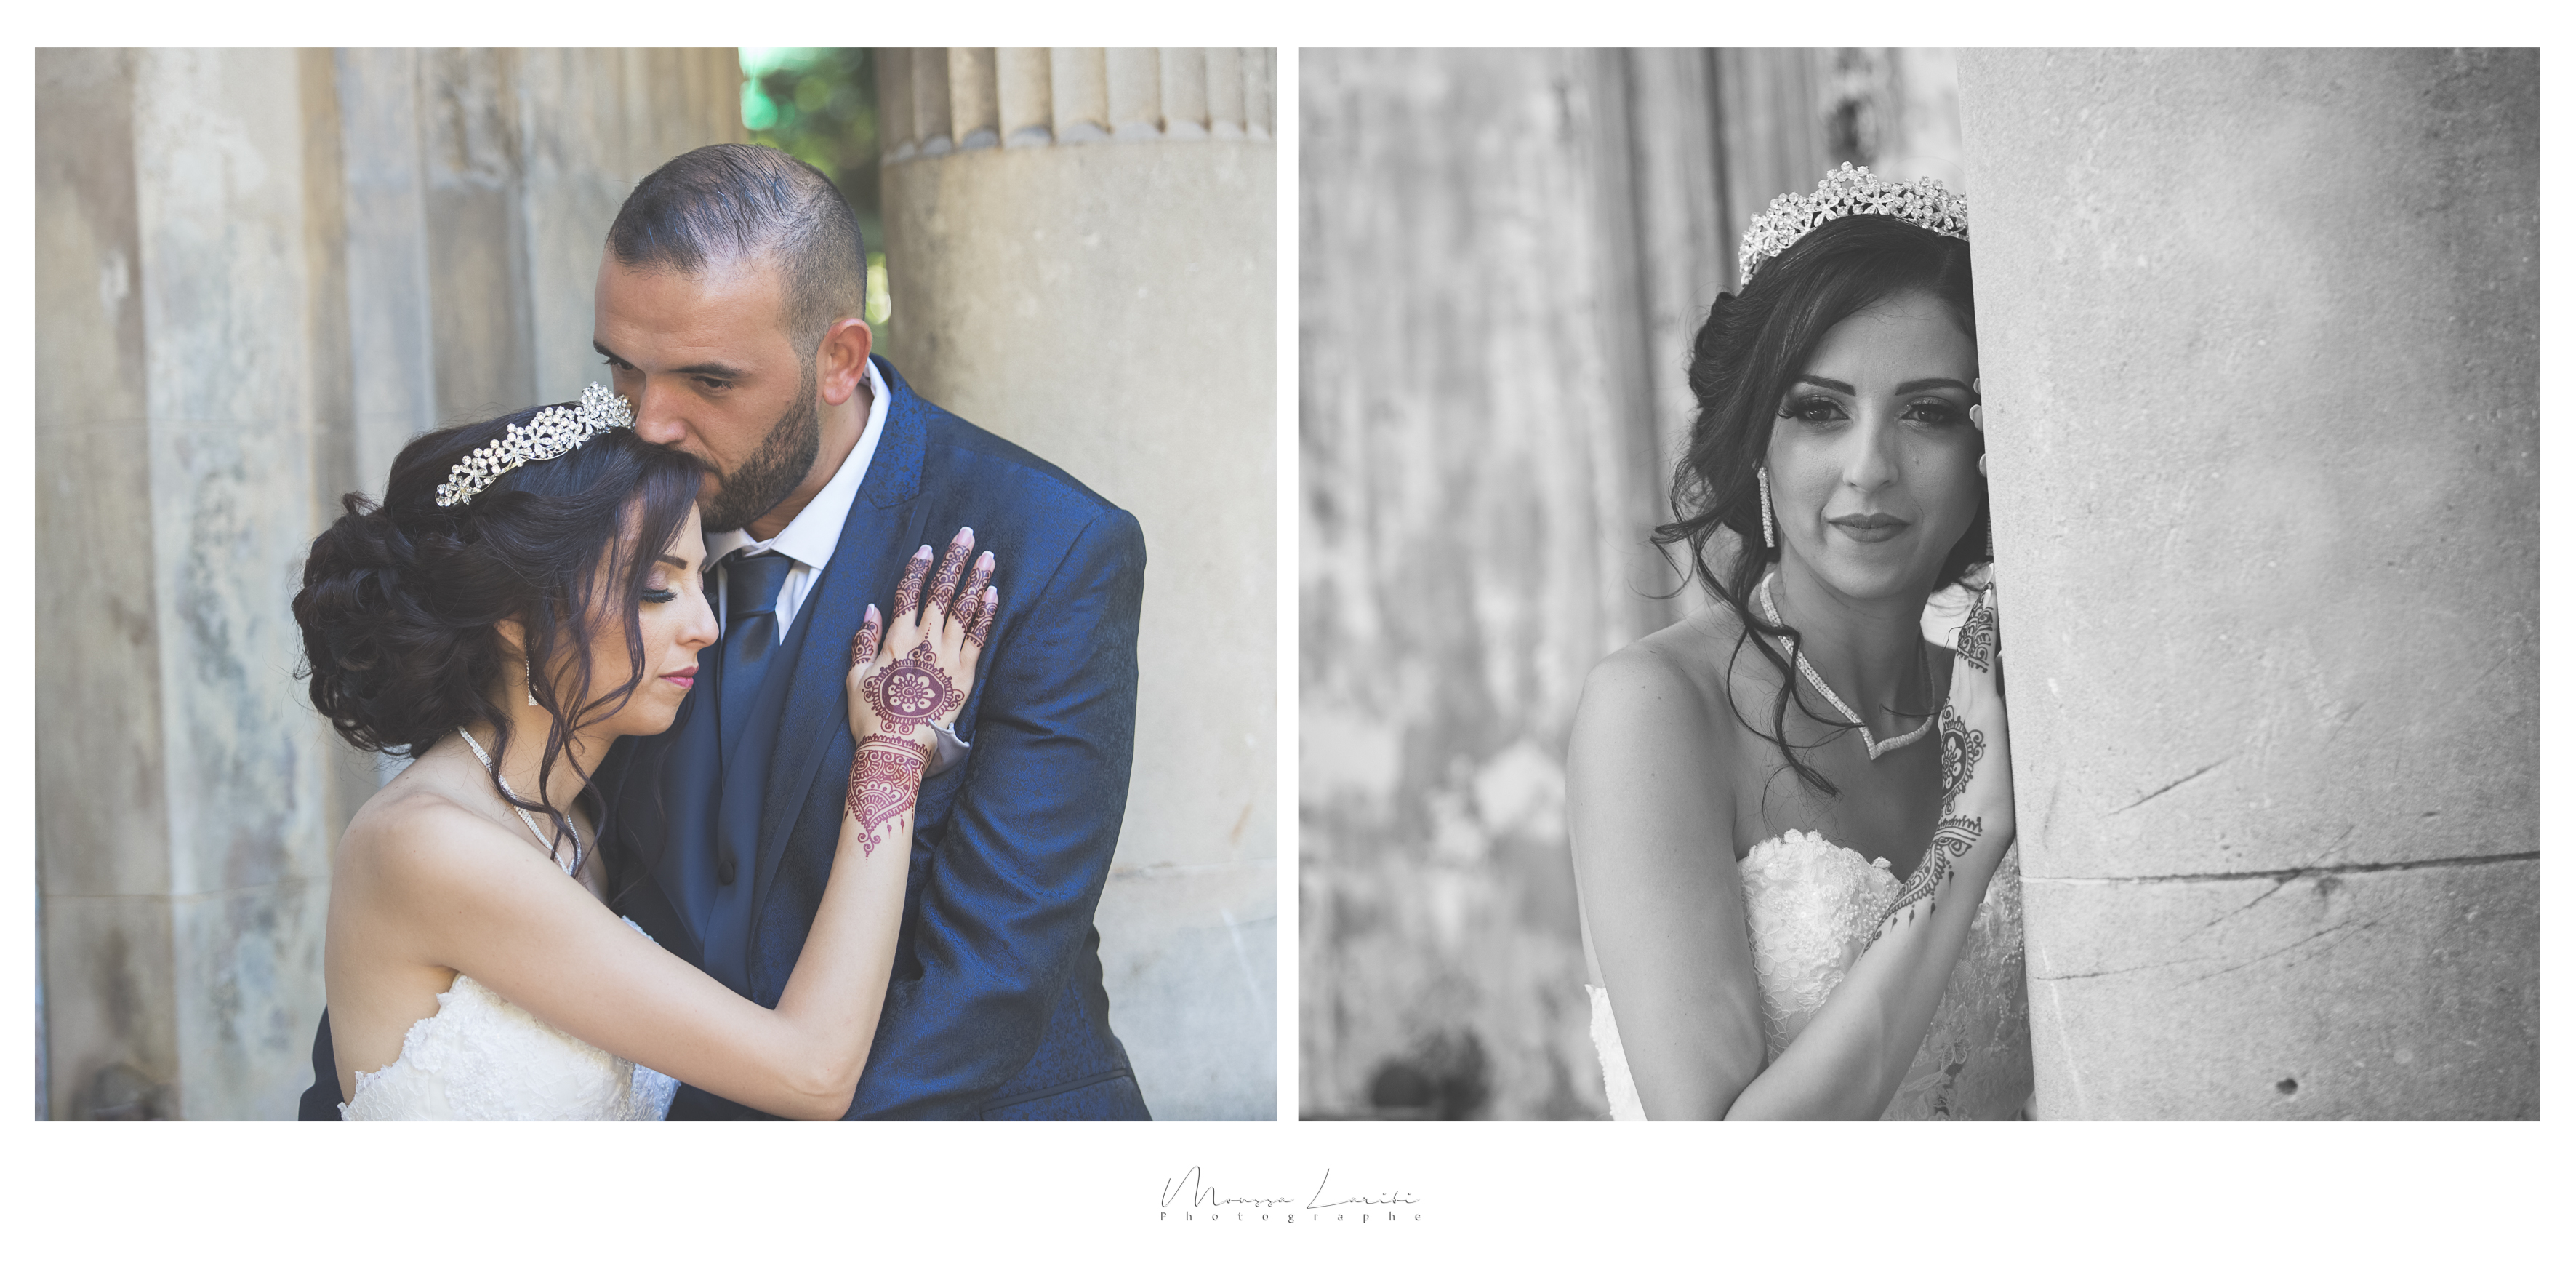 Photographe Mariage - Moussa Laribi - Ph